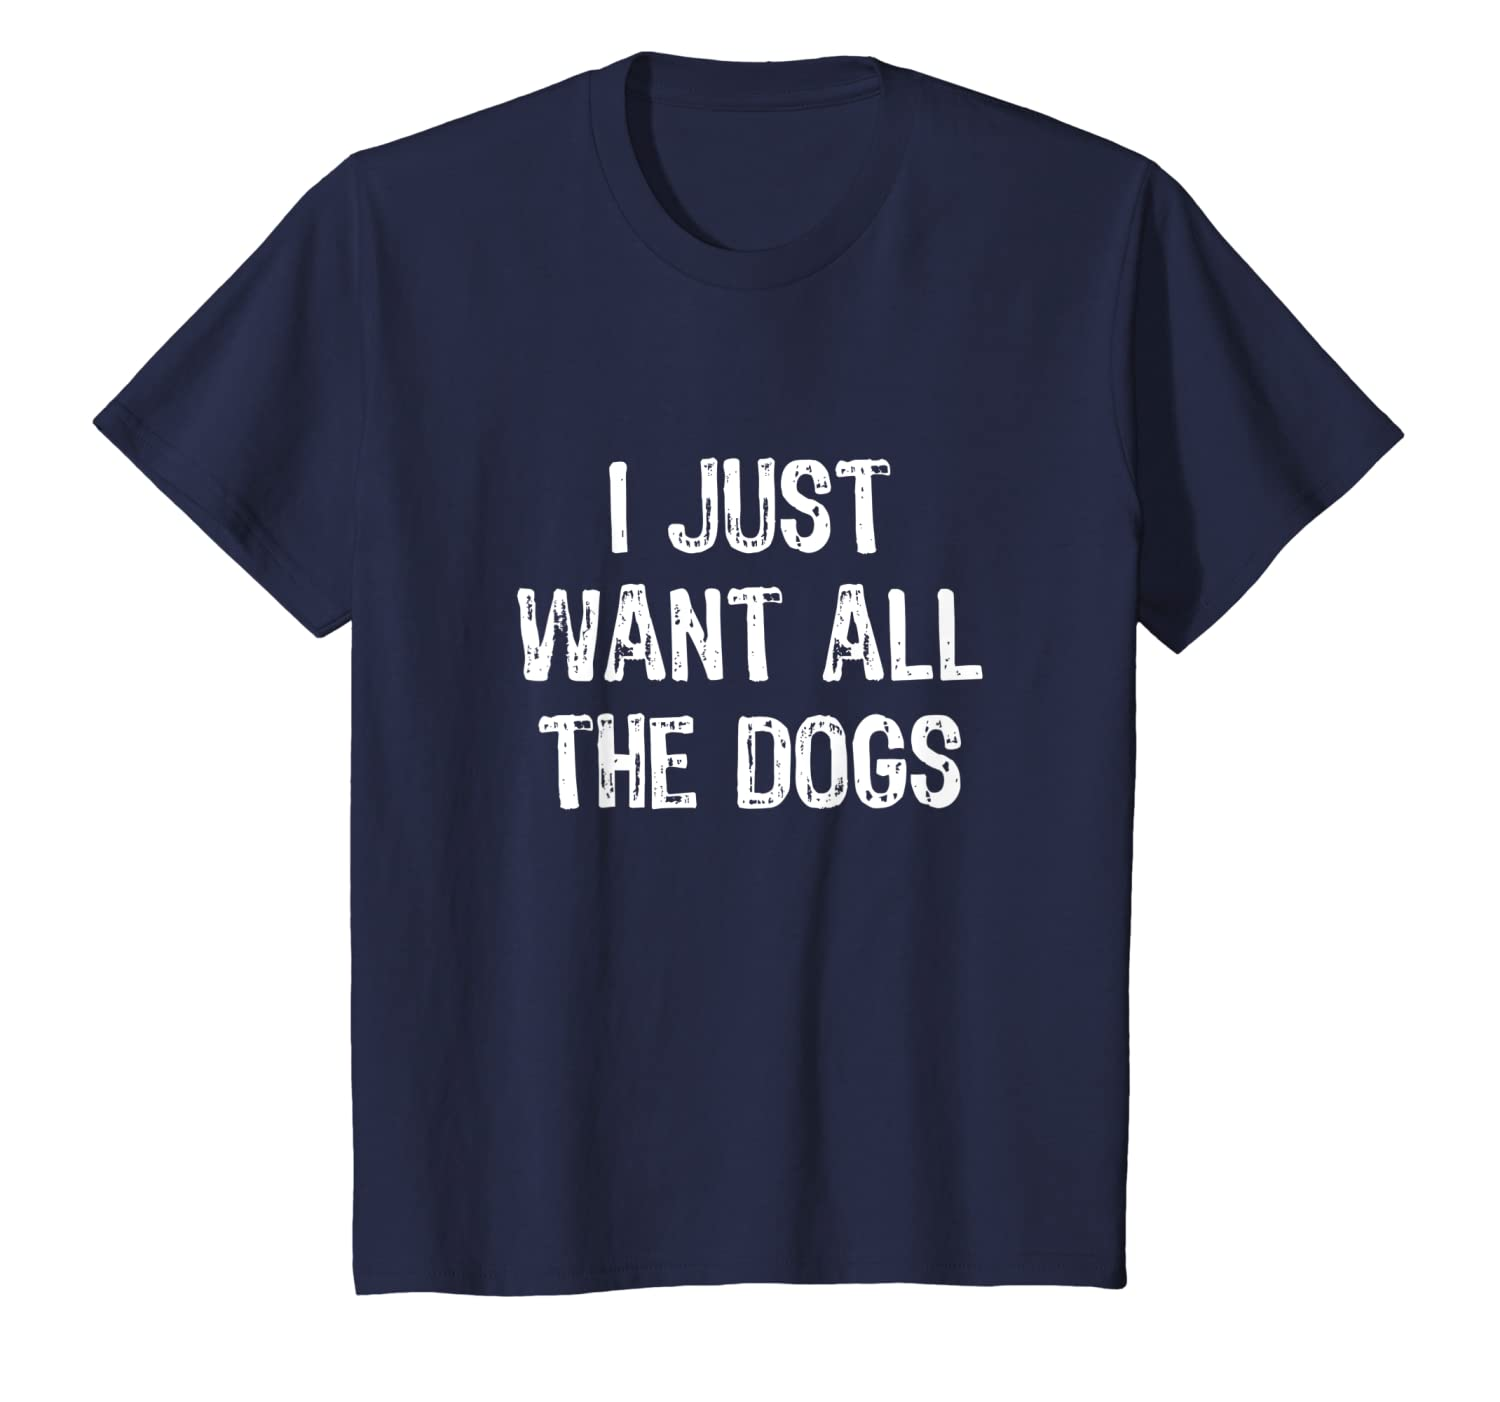 574c6e0c77f6a Amazon.com: I Just Want All The Dogs Funny Dog Lover Gift T-Shirt ...